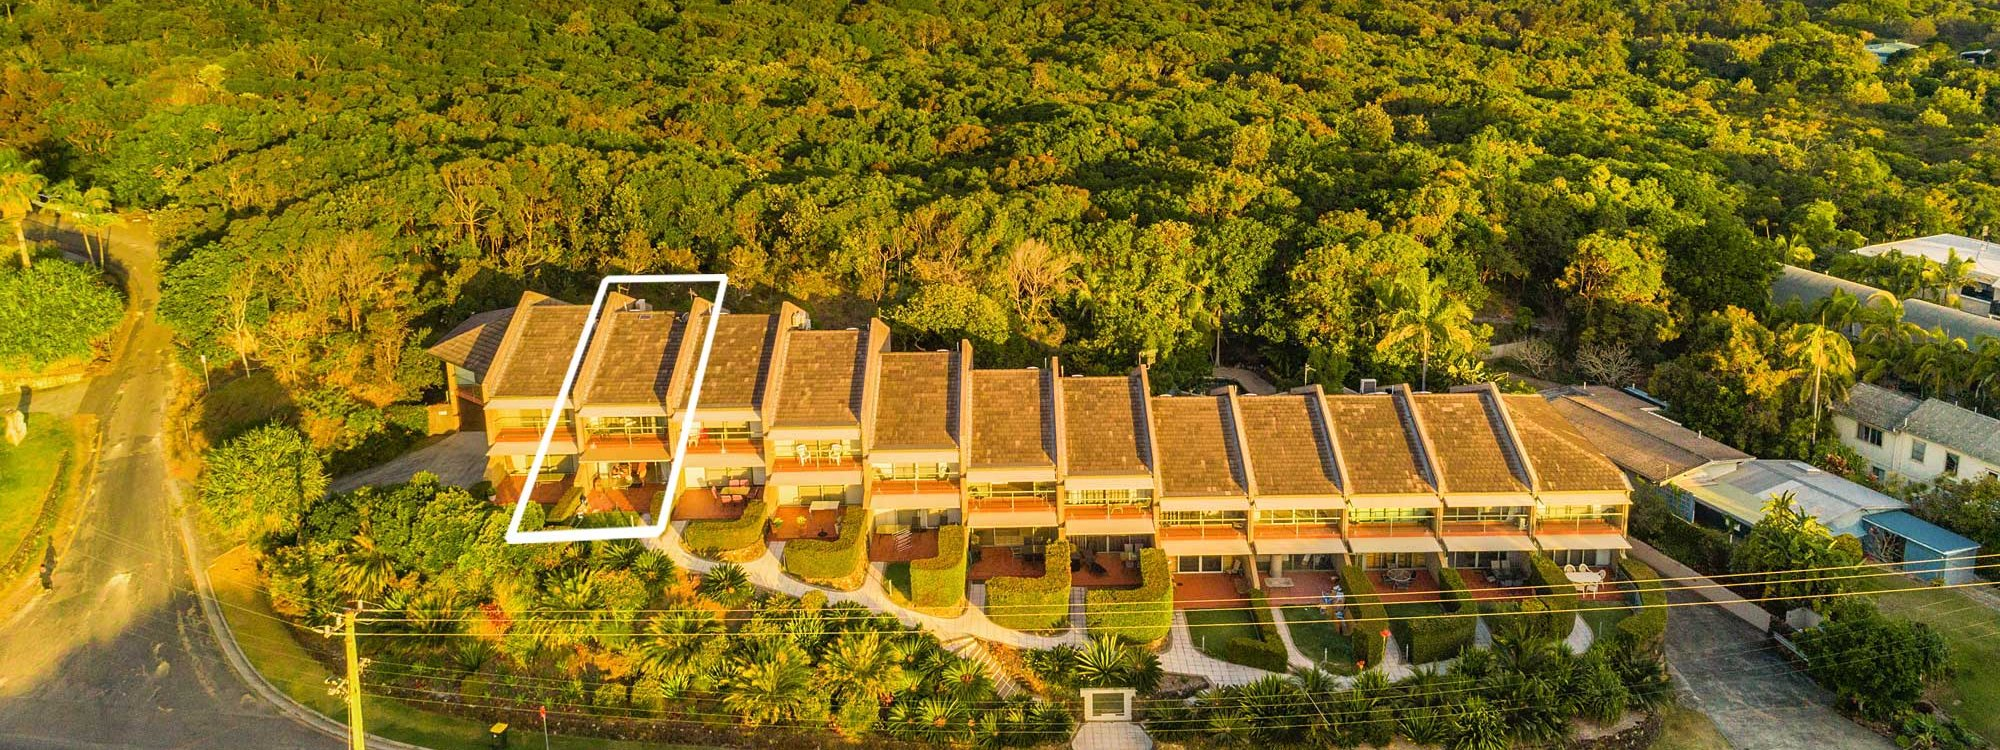 11 James Cook - Byron Bay - Aerial Front of Building Towards Tallows Property Line